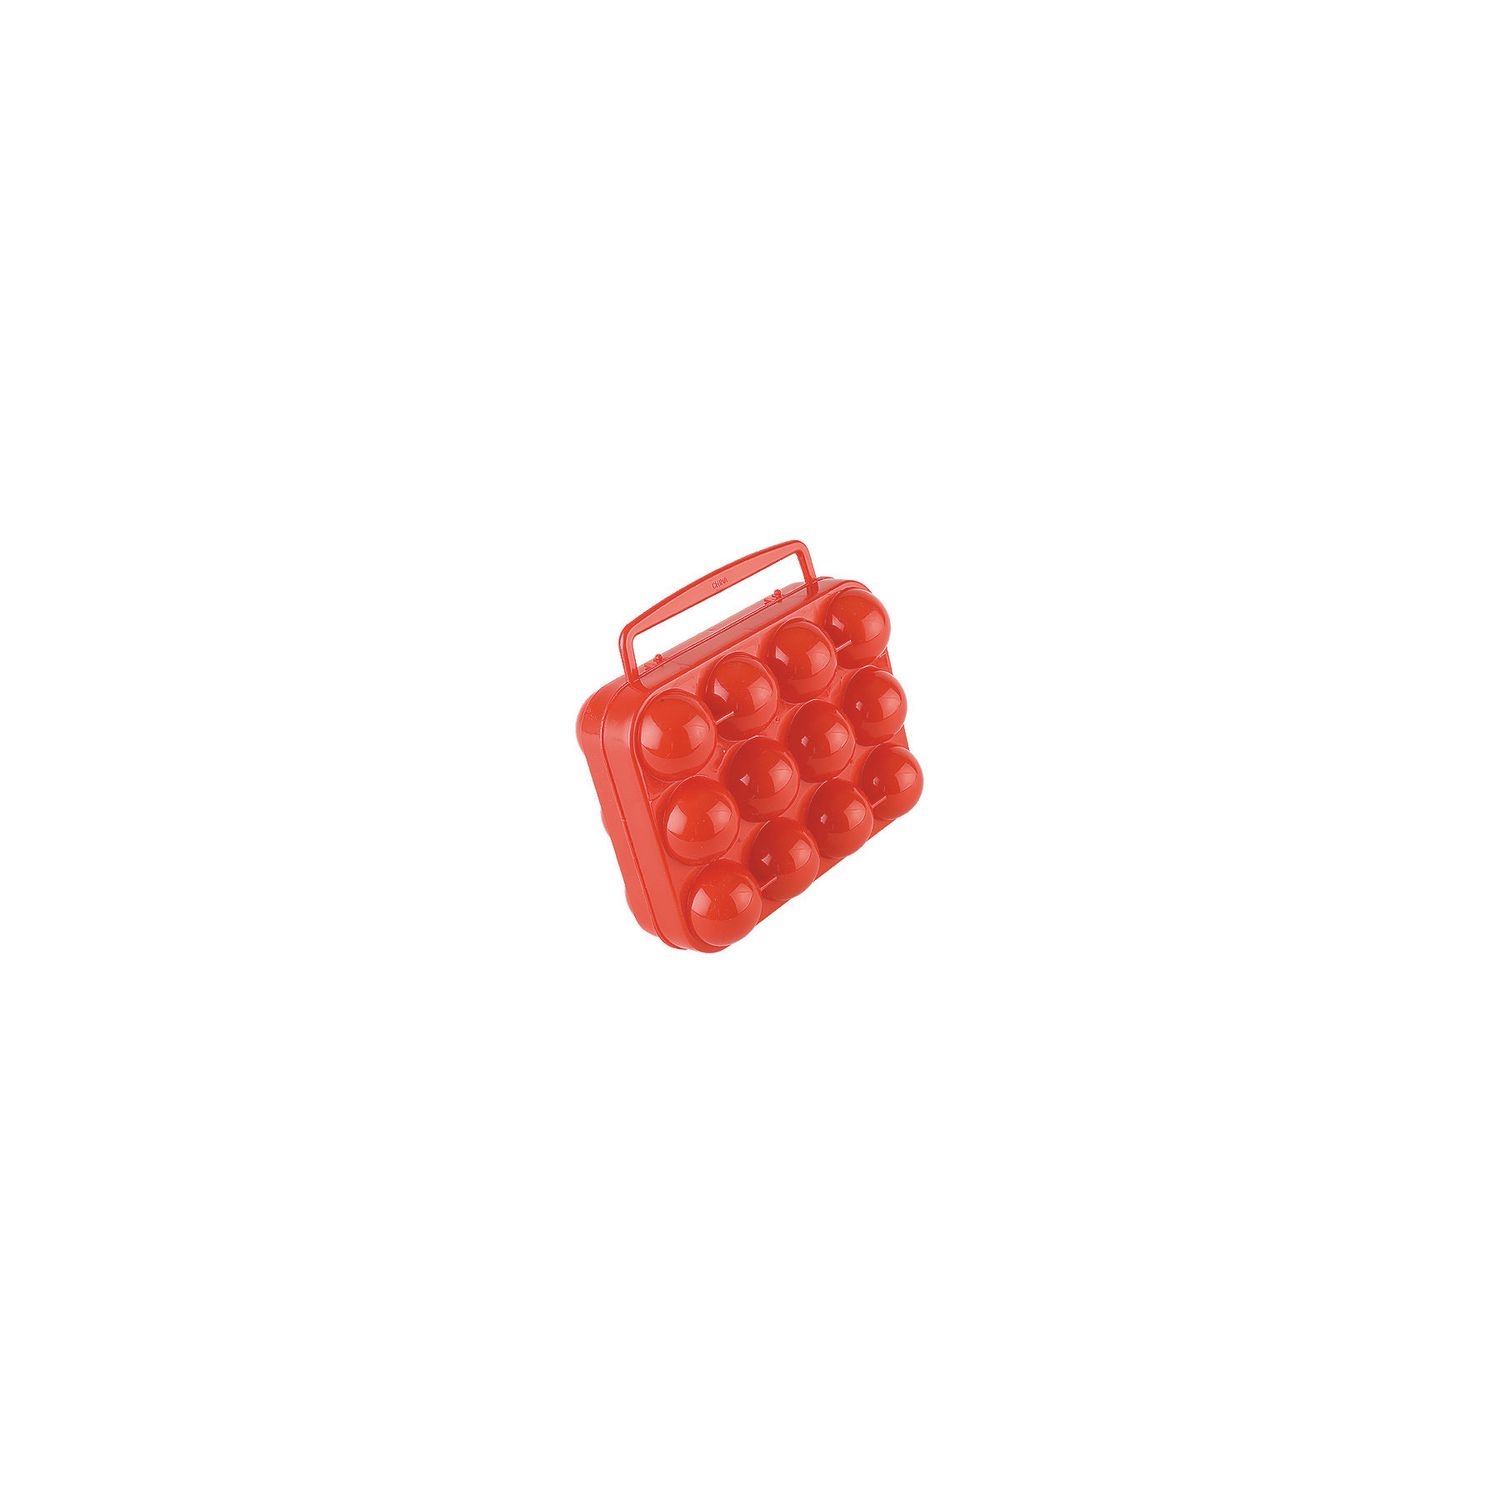 Coleman Egg Container Plastic 12Count Easy Carry Handle Egg Carrier Camp Outdoor